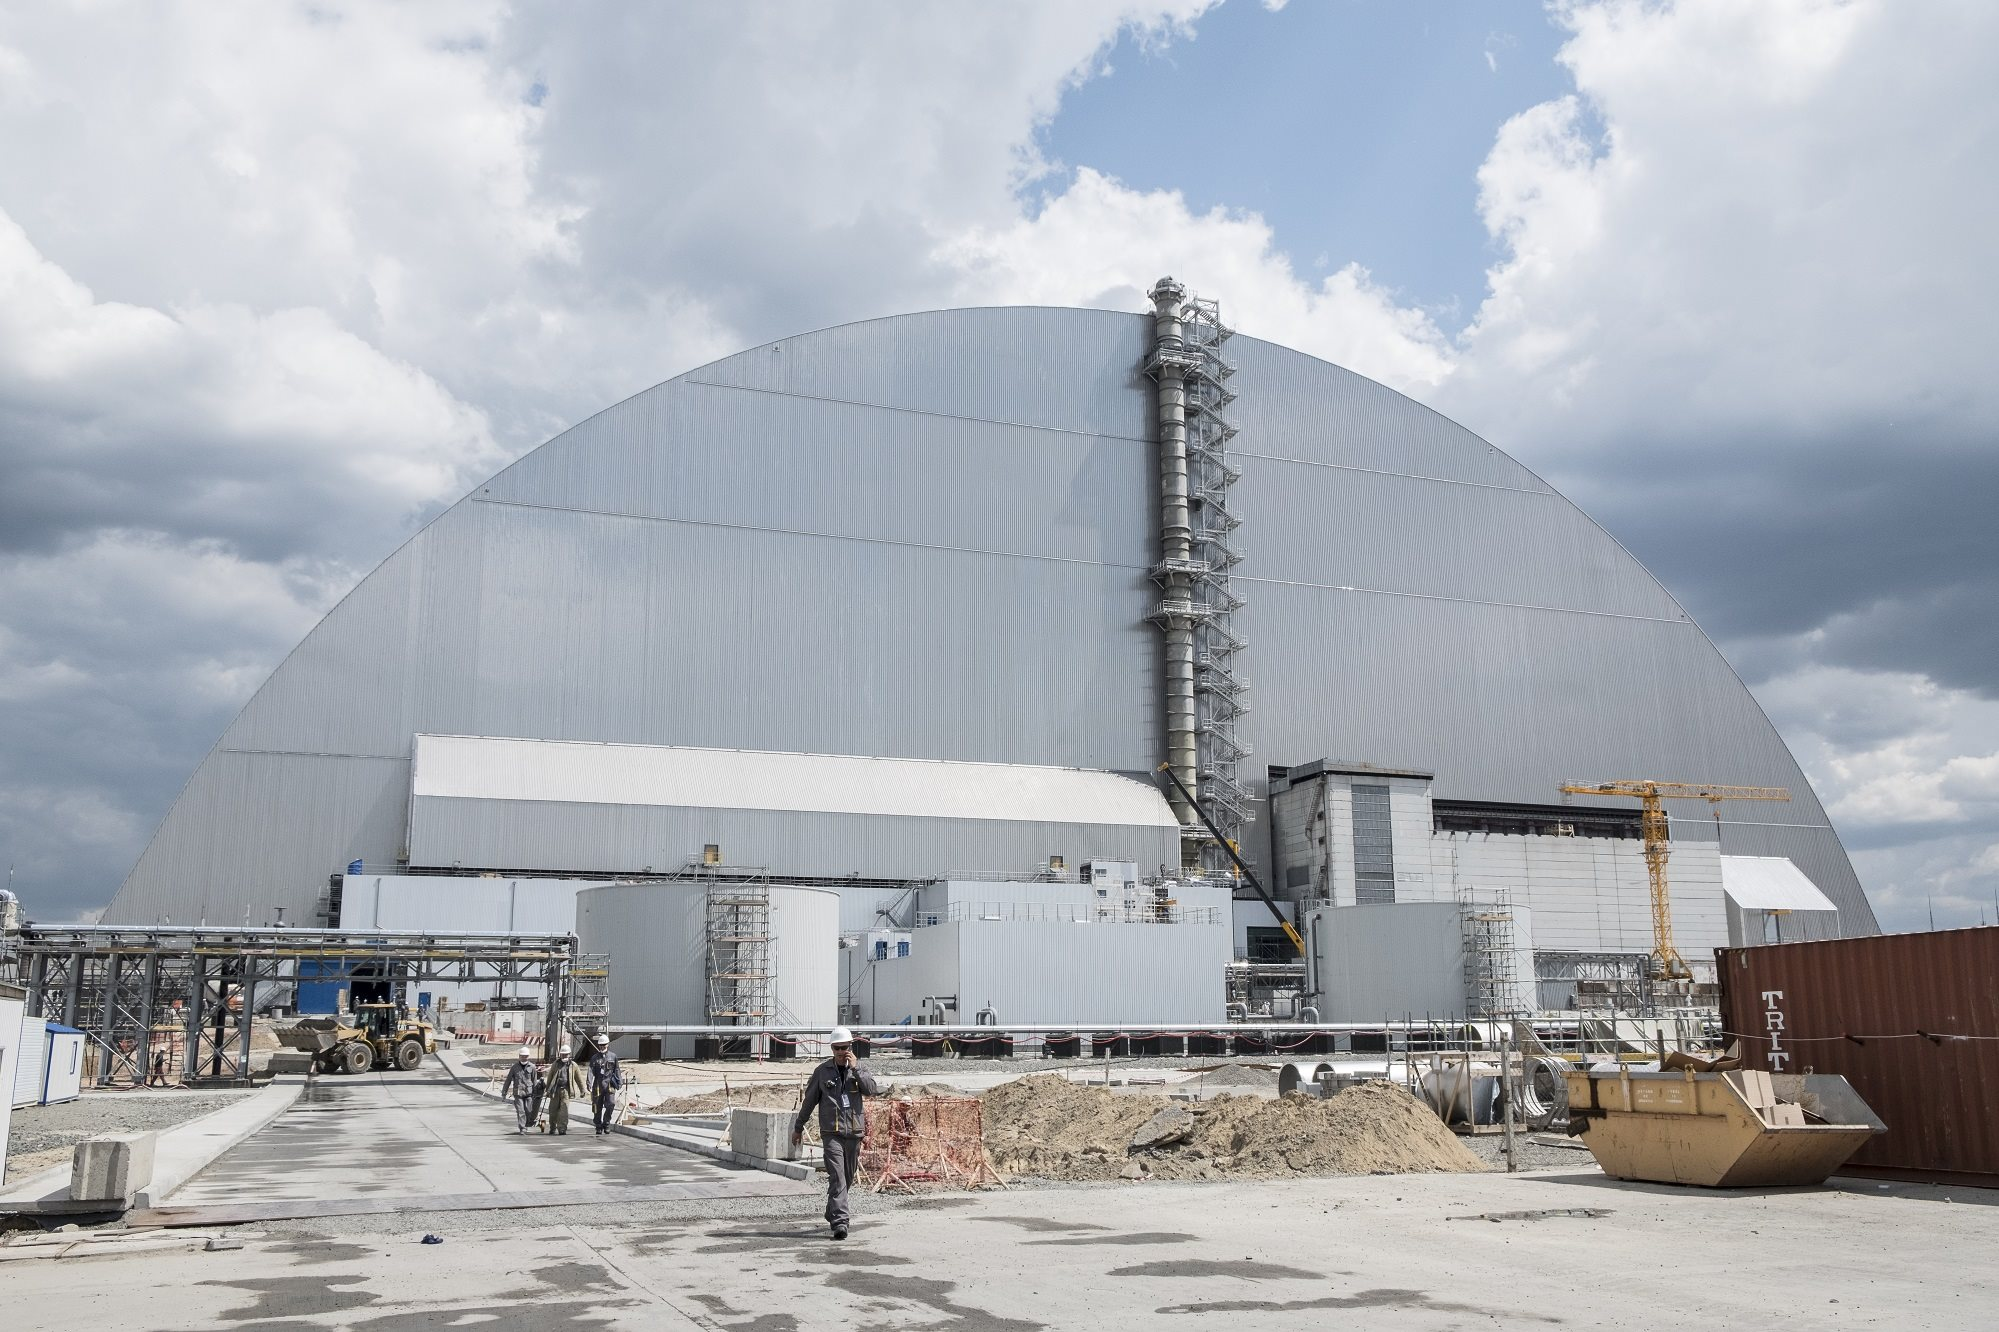 Chernobyl finished confinement system tests - New Civil Engineer